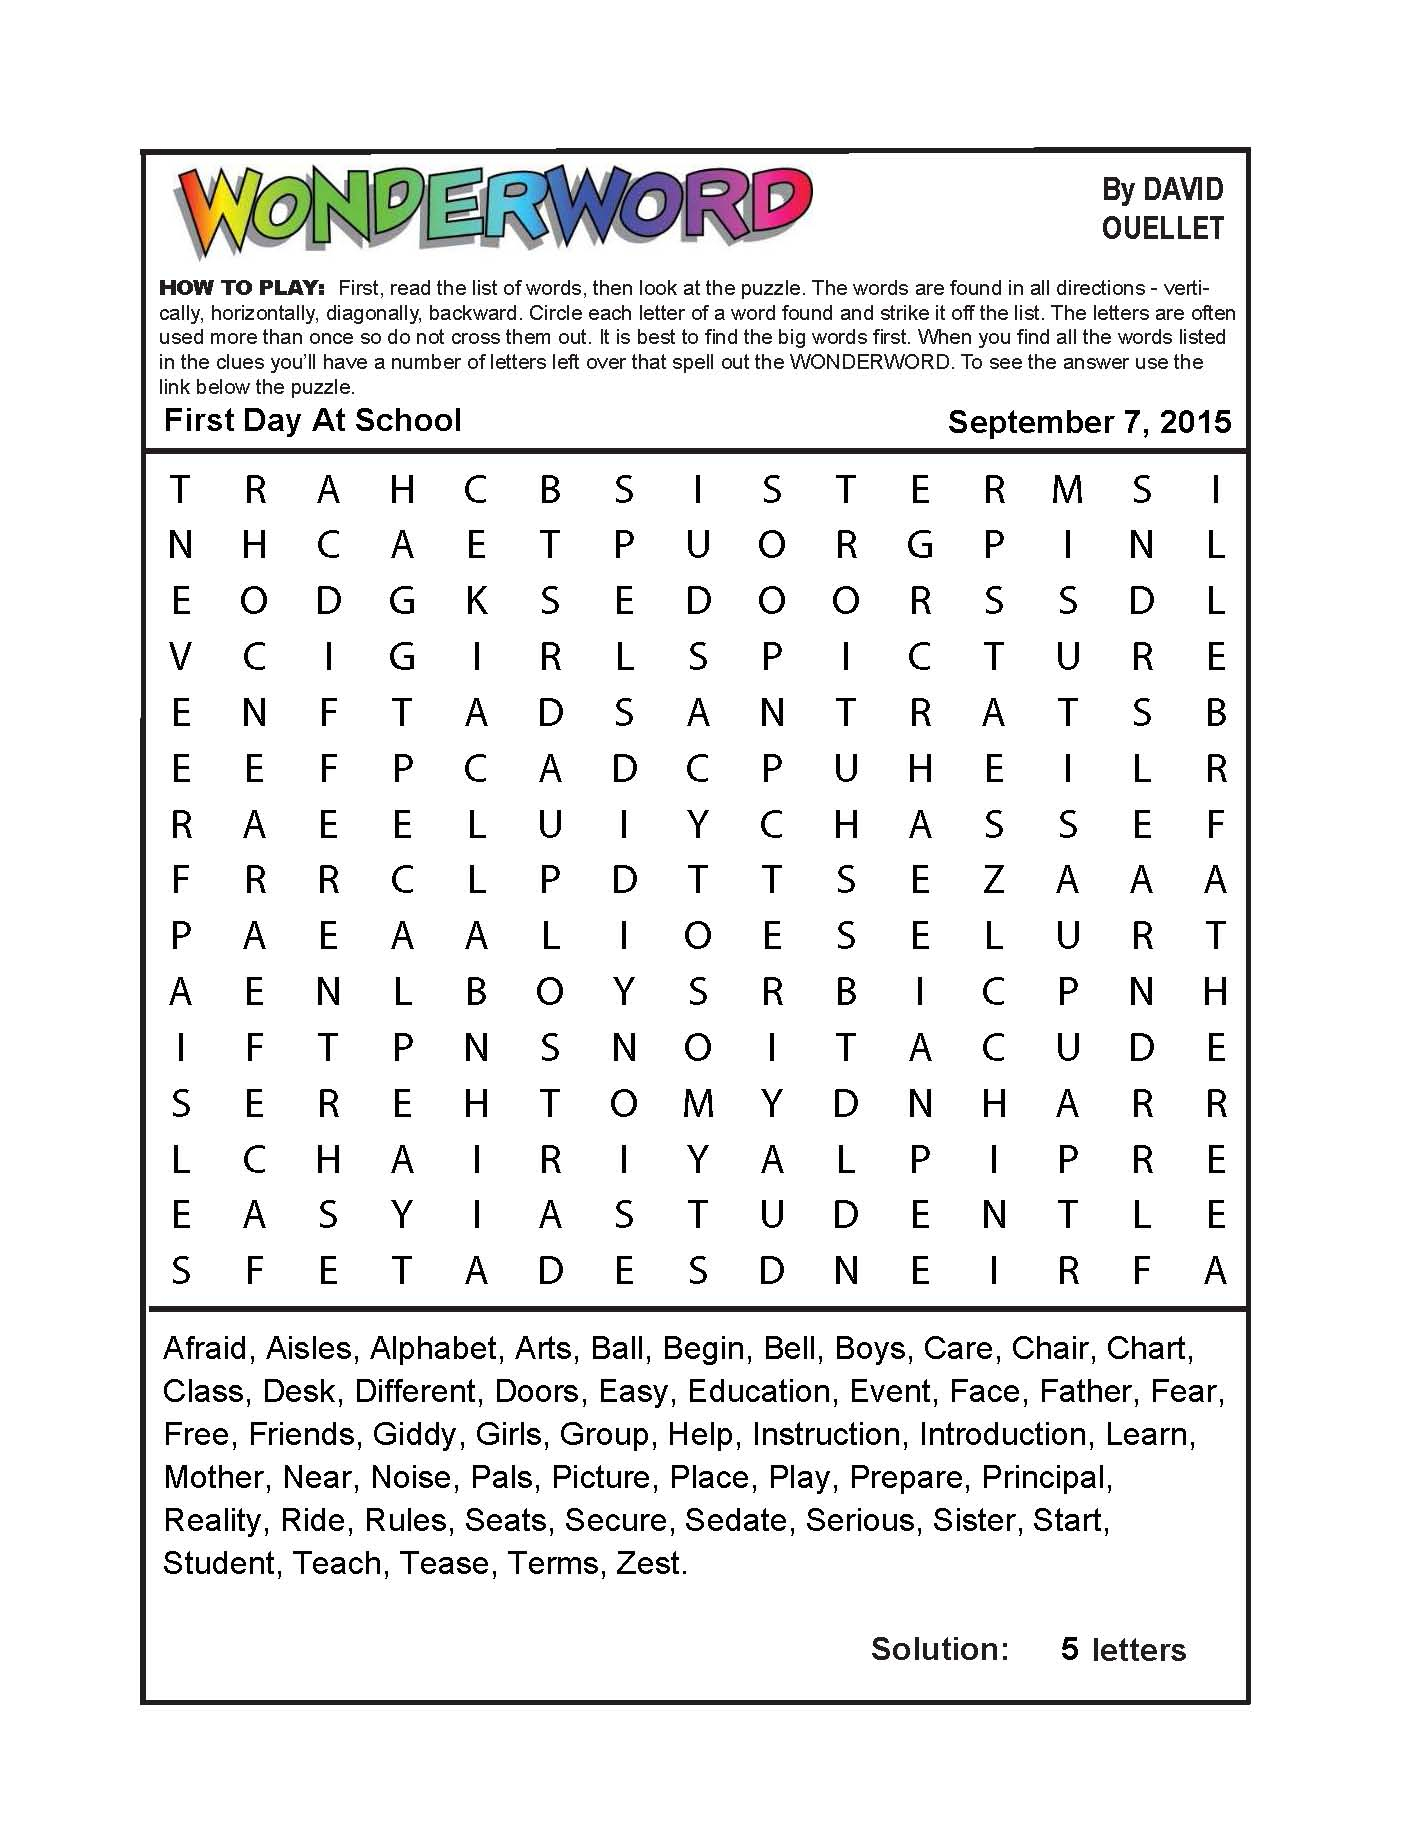 First Day At School - Printable Wonderword Puzzles Download